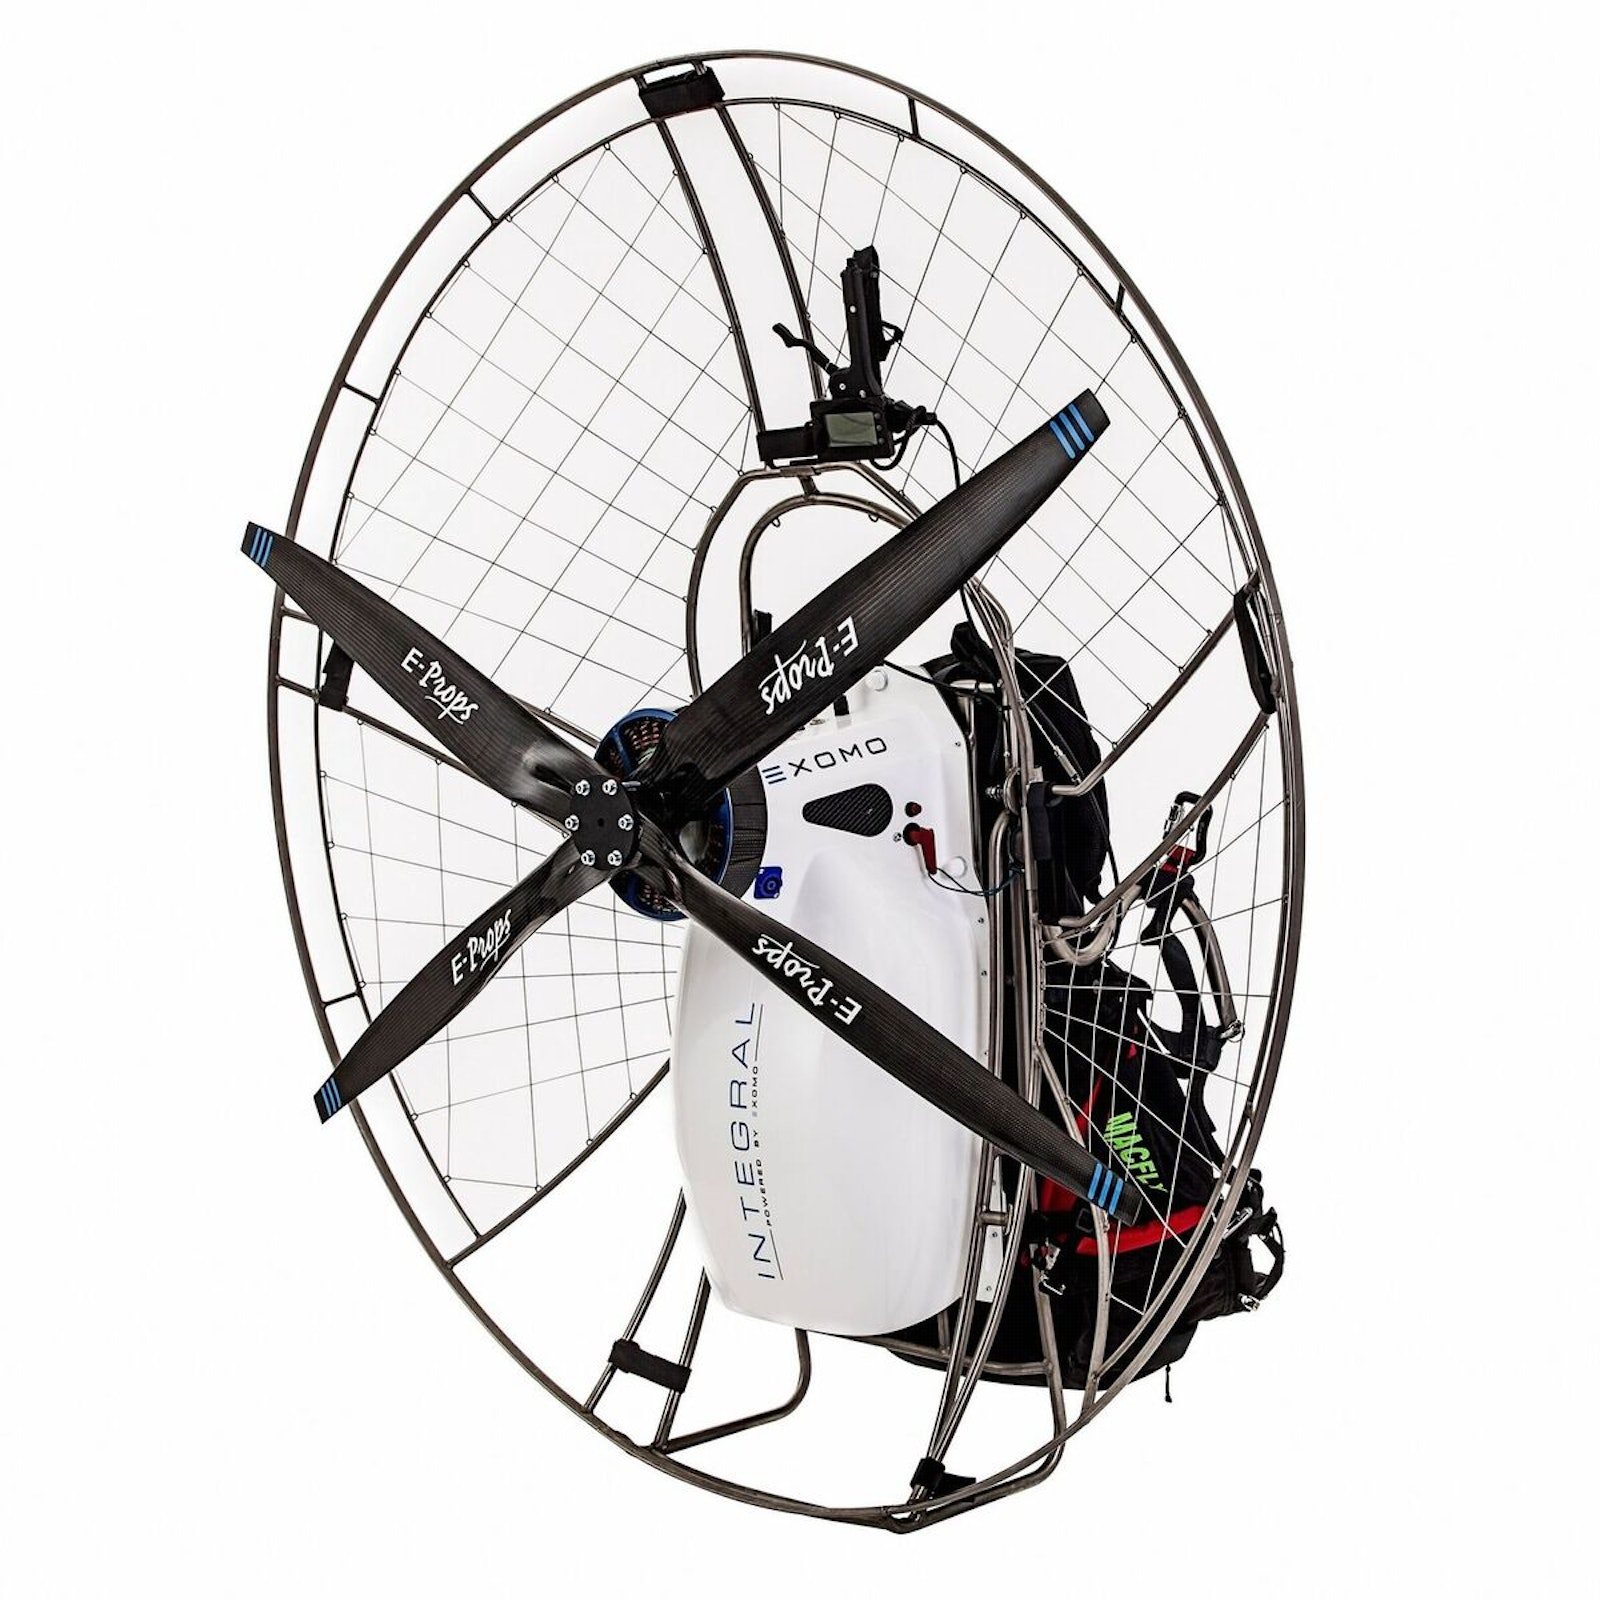 New design for electric powered paramotor | Electric